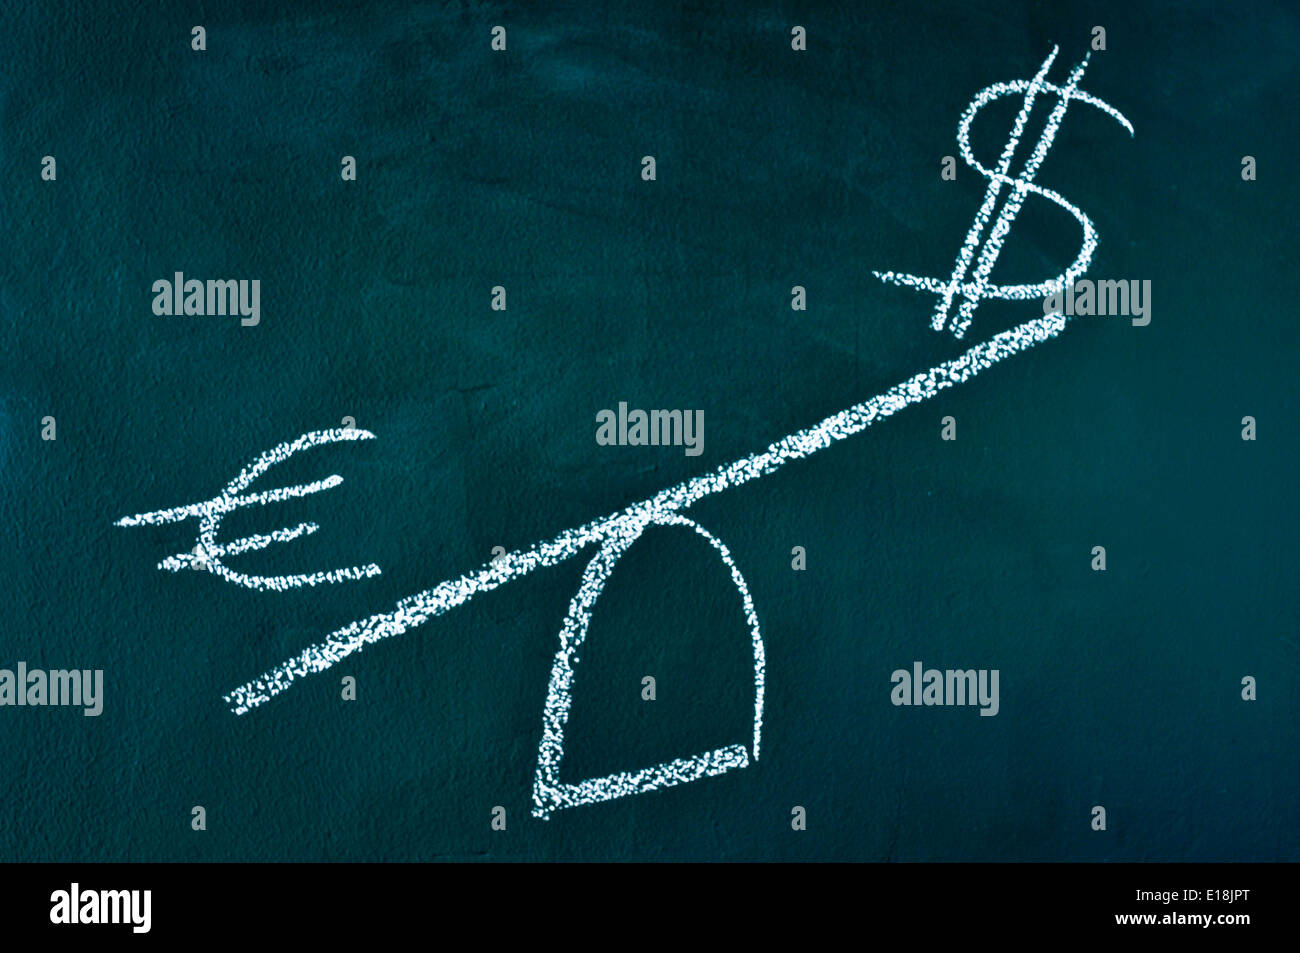 euro and dollar signs in a balance scale, depicting the idea of heavier weight of the euro against the dollar - Stock Image